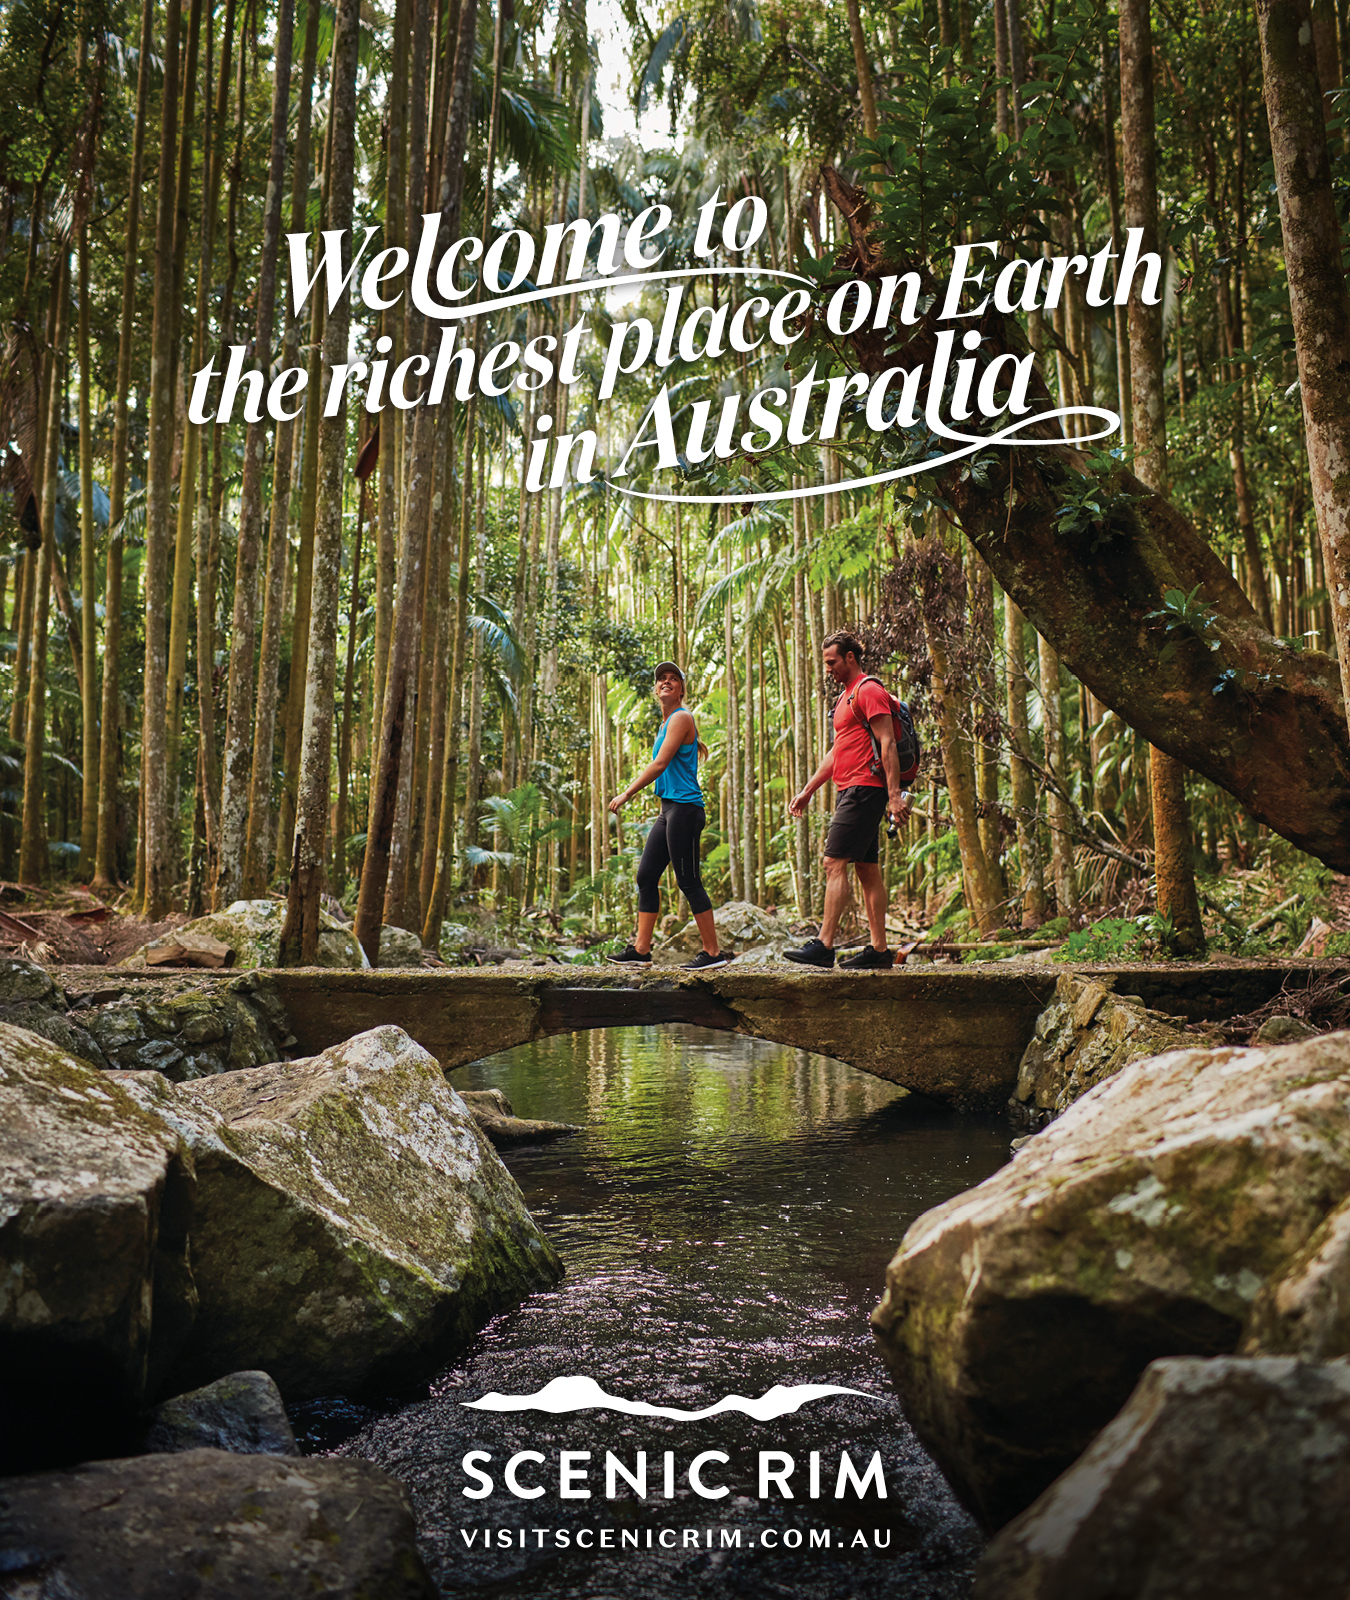 Brother & Co, Brisbane lends services with donated campaign concept to help bushfire affected Scenic Rim